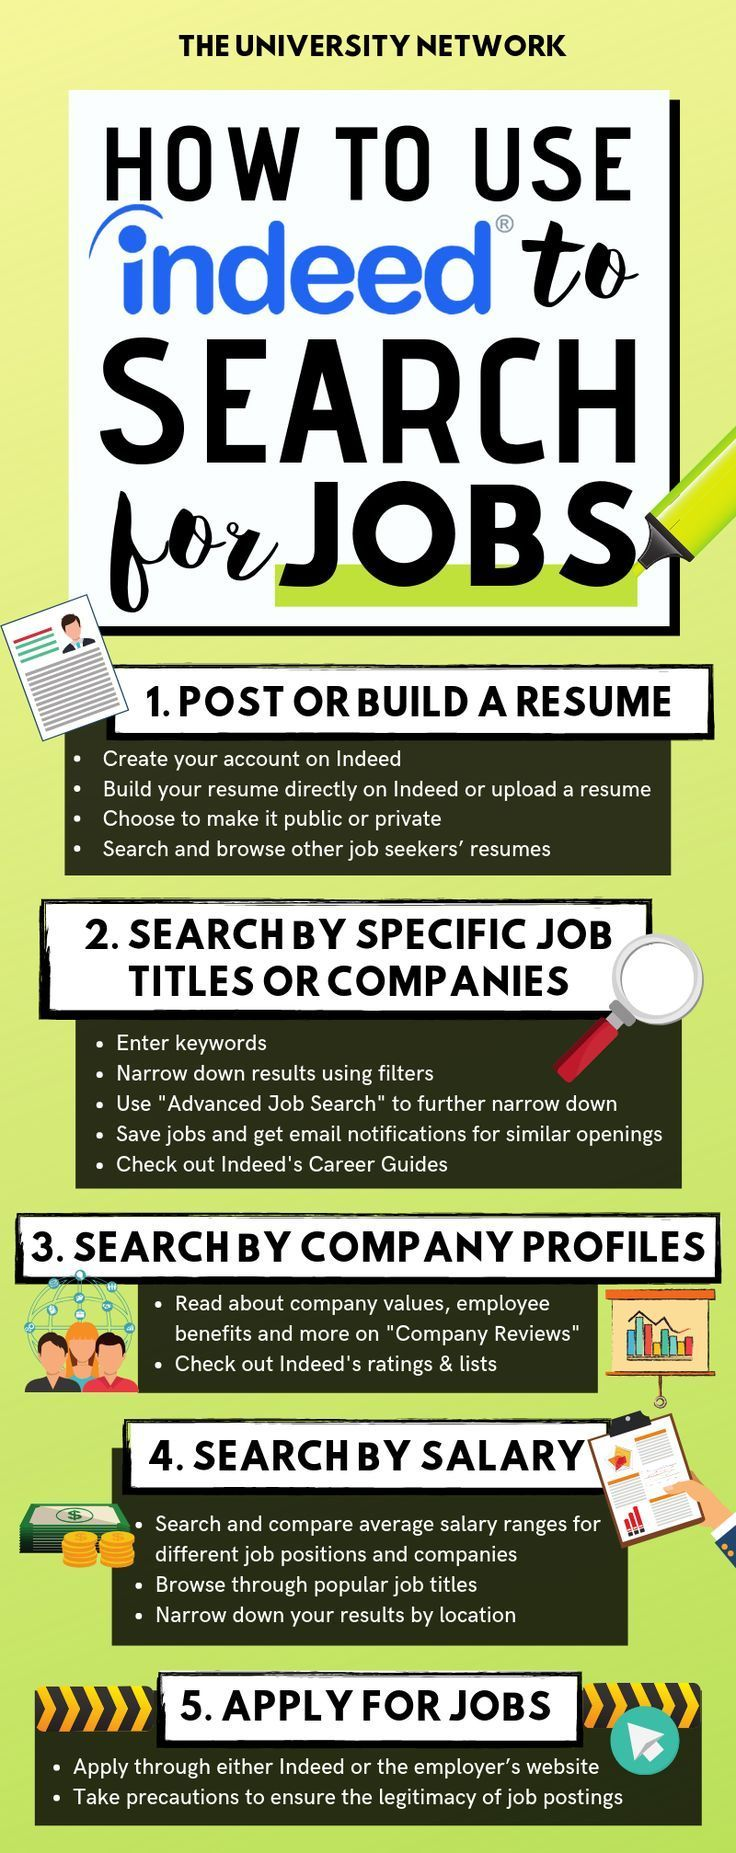 With Indeed You Can Post Or Build A Resume Search Set Job Alerts Apply And Keep Track Of The Entire Process Let S Lo Job Search Build A Resume Job Hunting